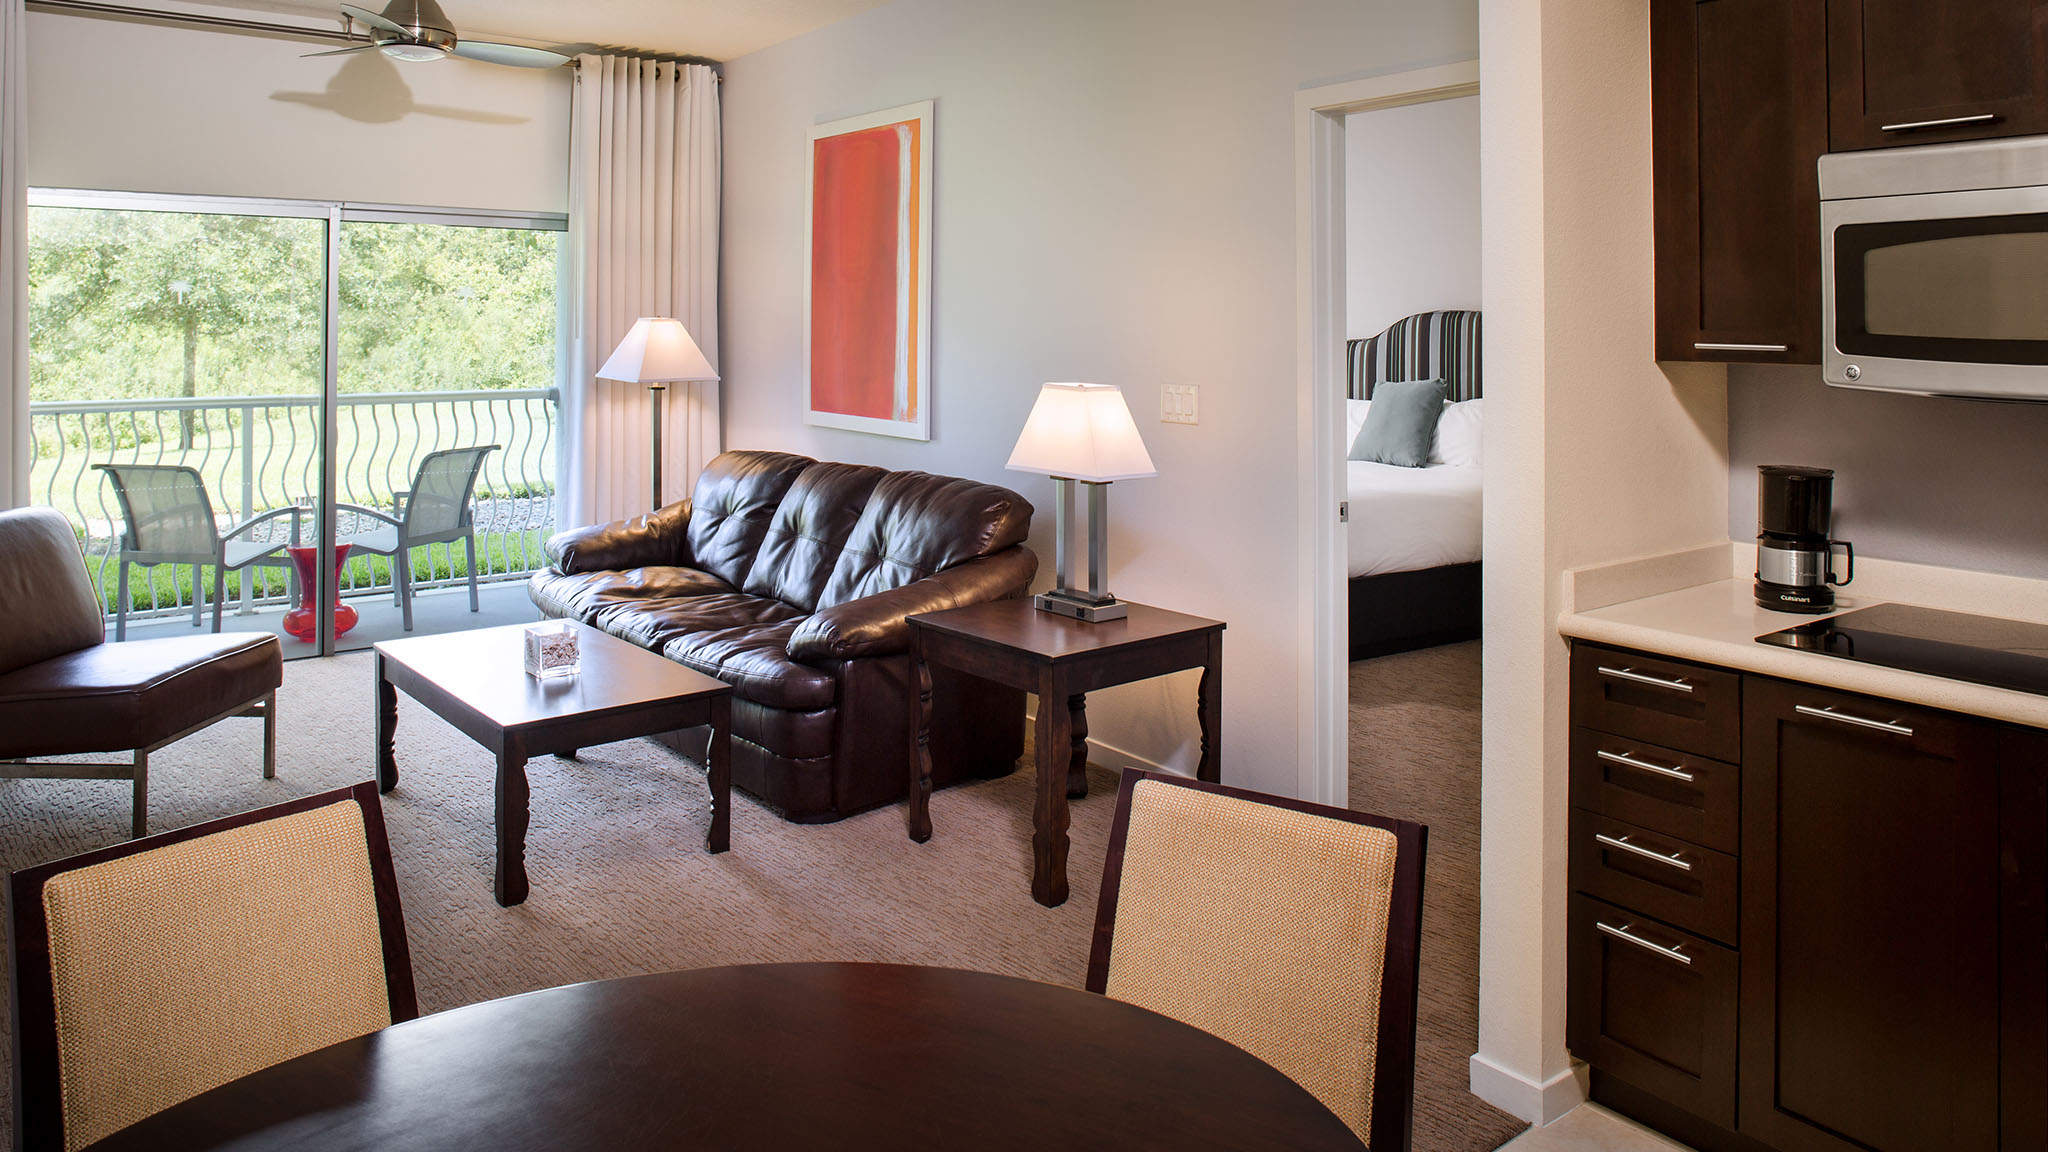 Meli orlando suite hotel - 3 bedroom resorts in orlando florida ...